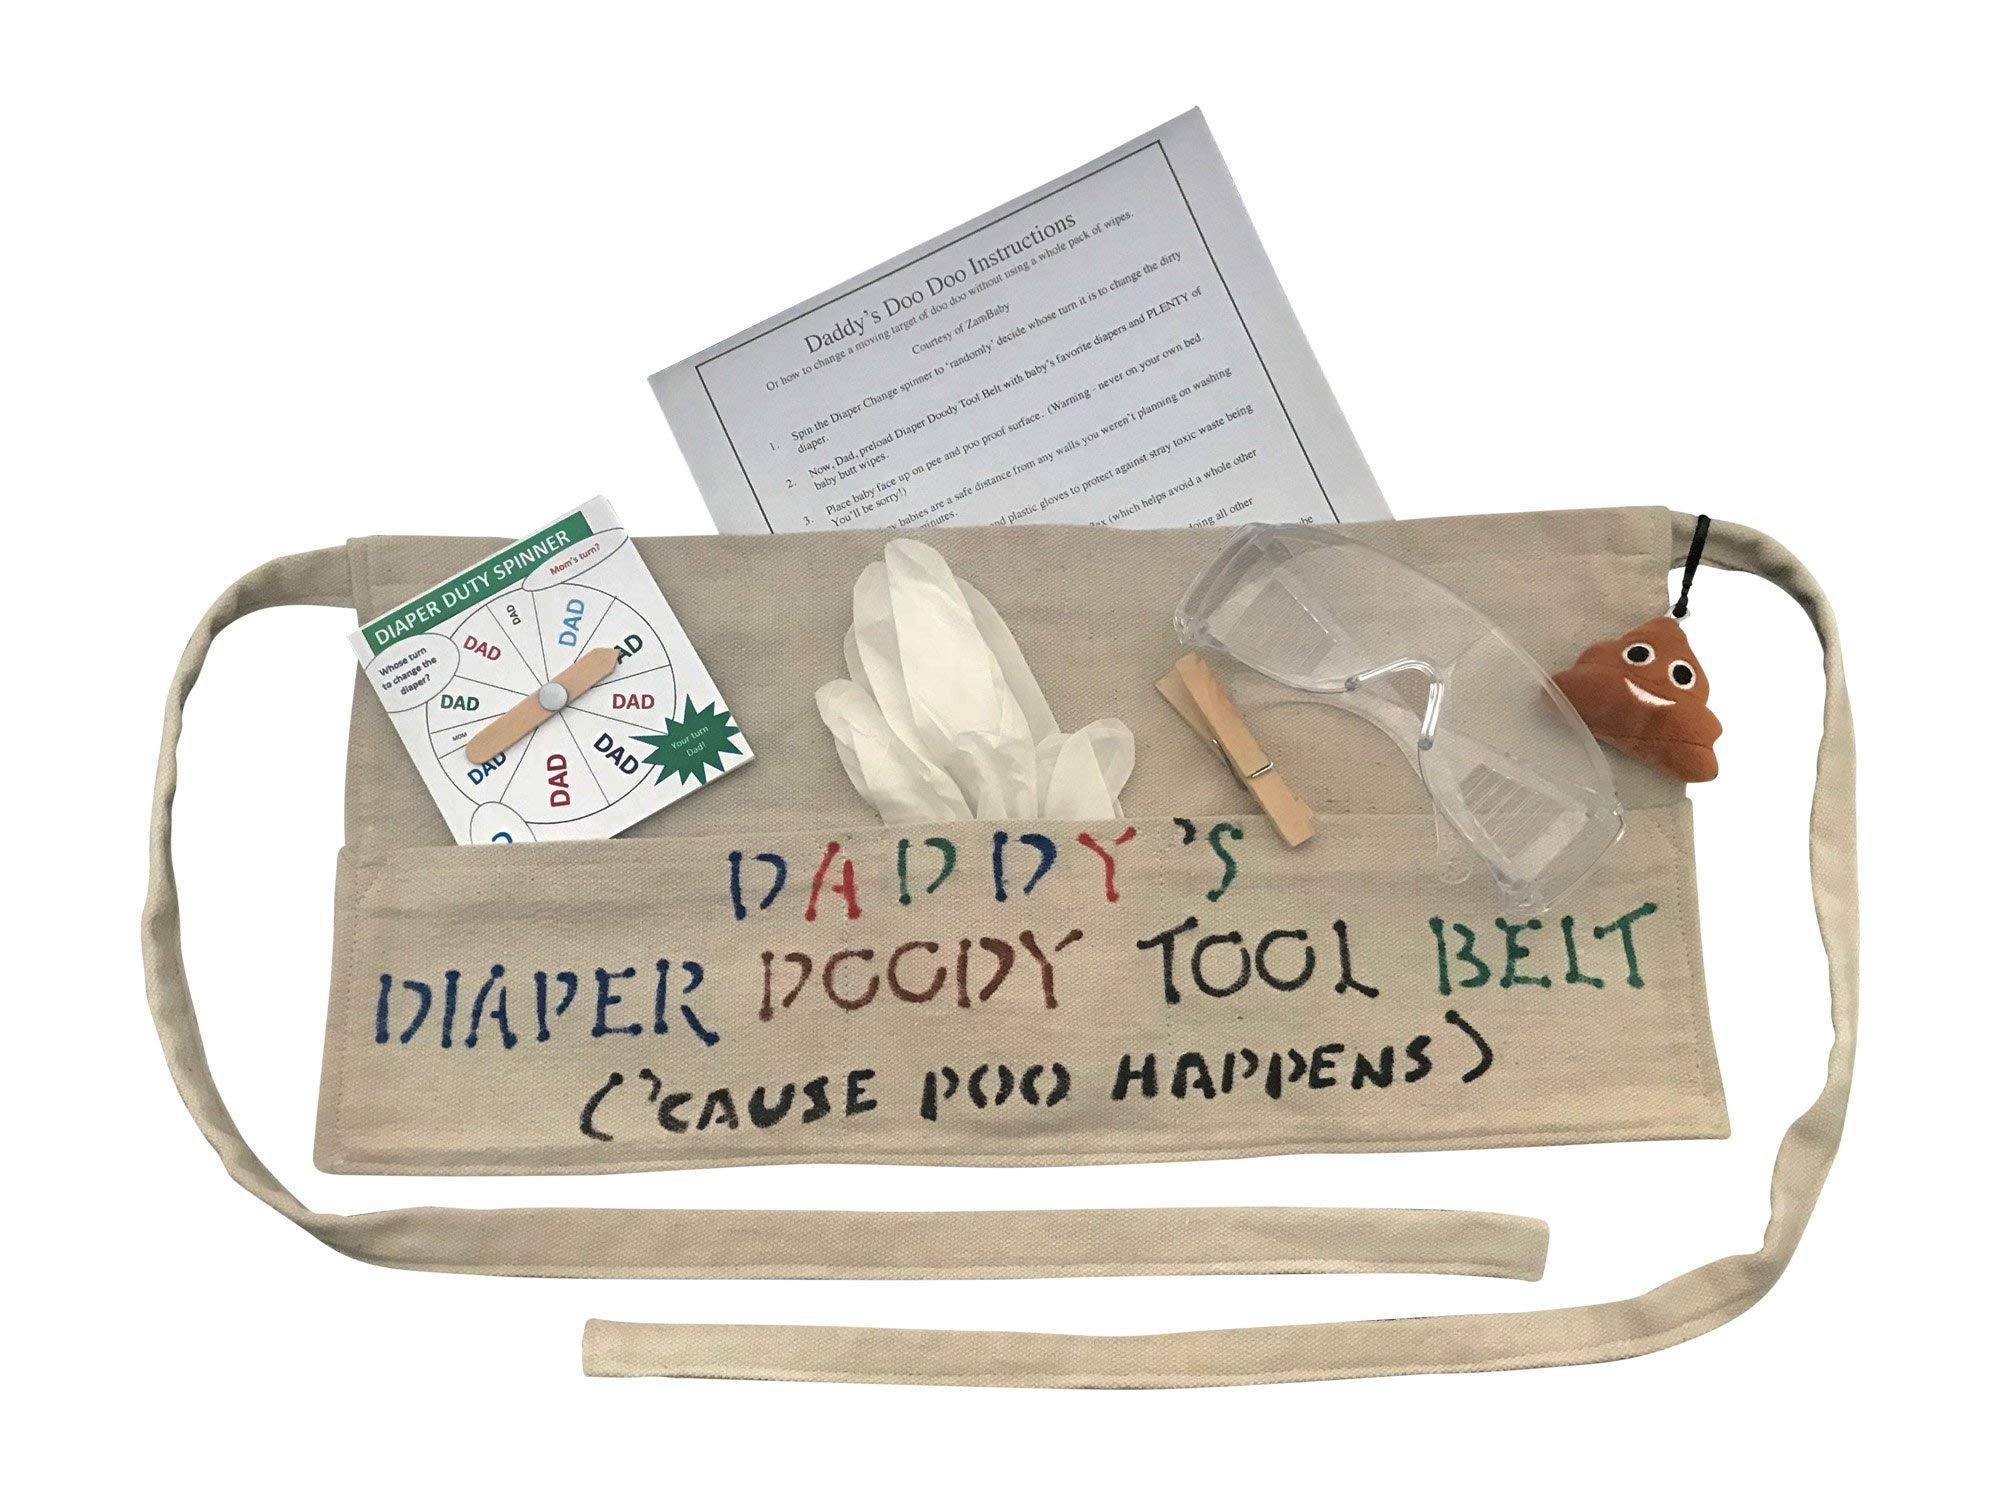 New Dad Funny Diaper Change Tool Belt Gift Set Fun at Baby Shower